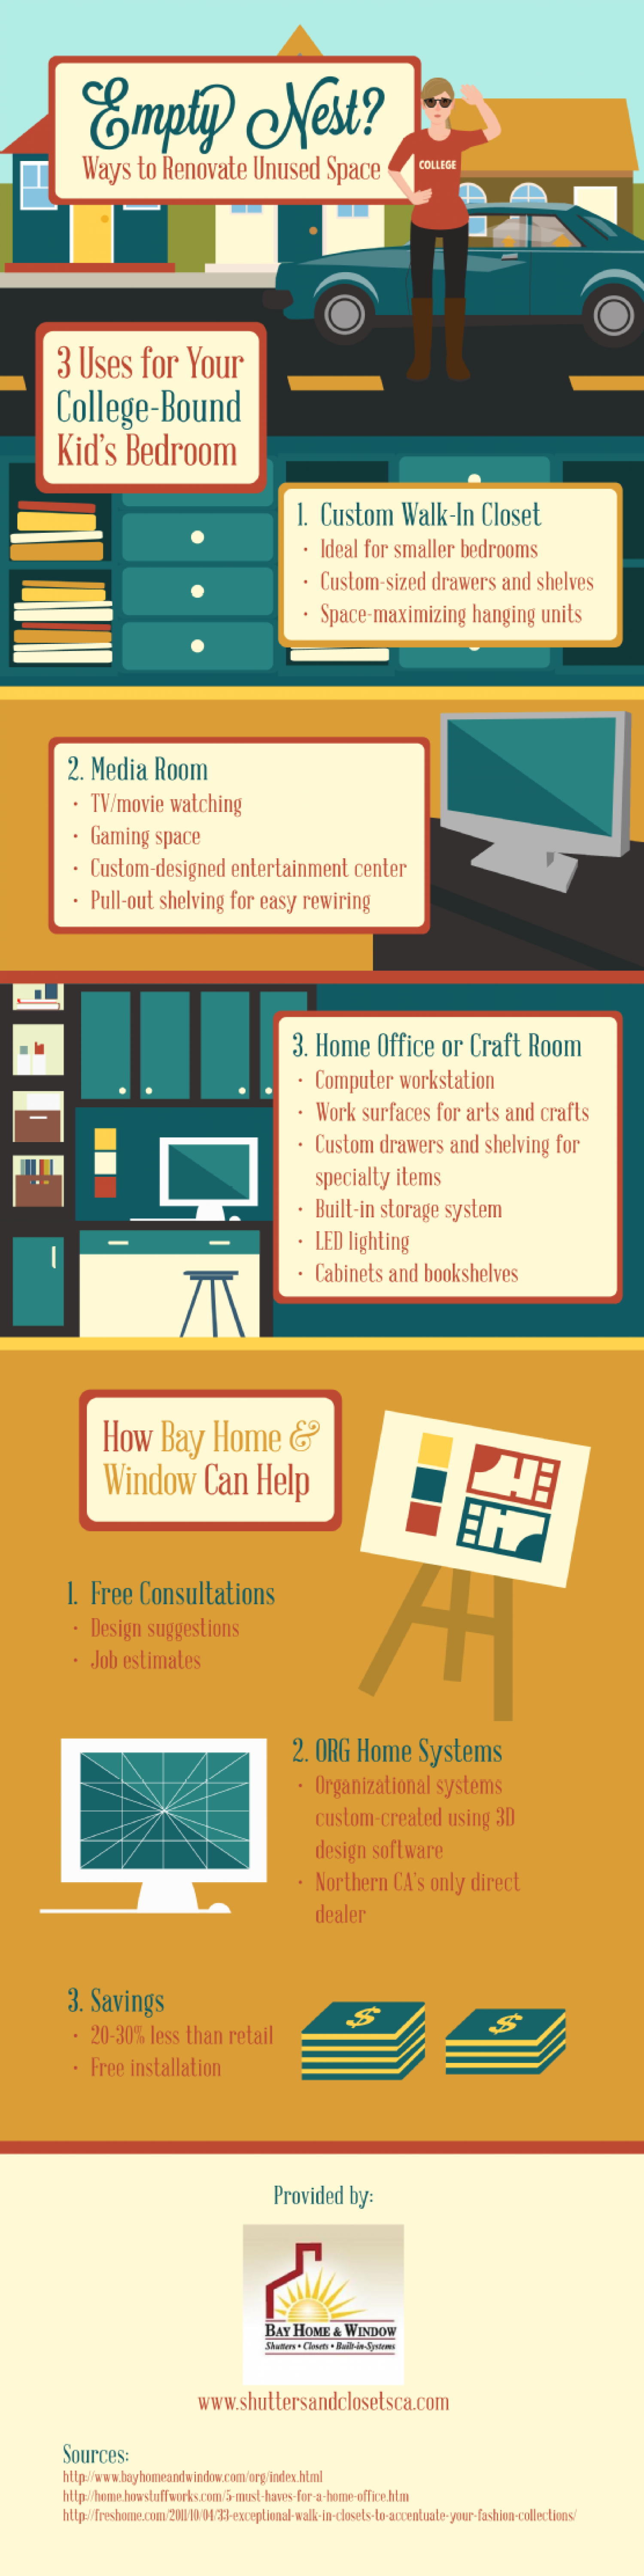 Empty Nest? Ways to Renovated Unused Space Infographic